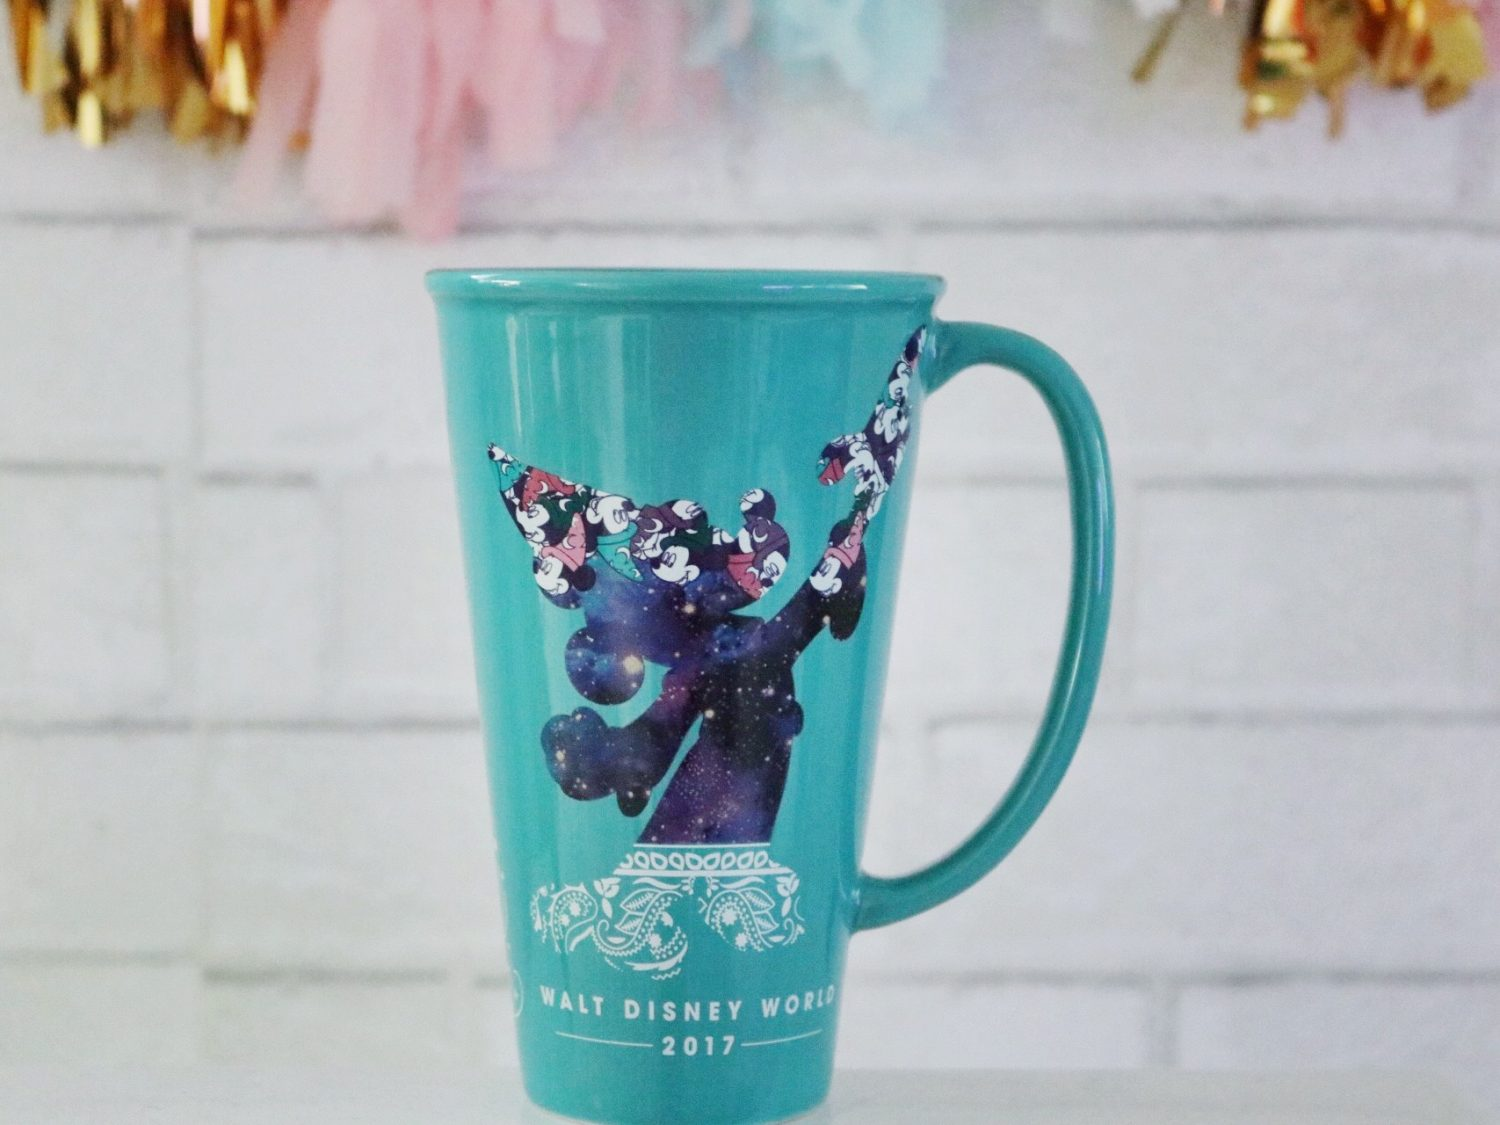 Walt Disney World 2017 Sorcerer Mickey Mug